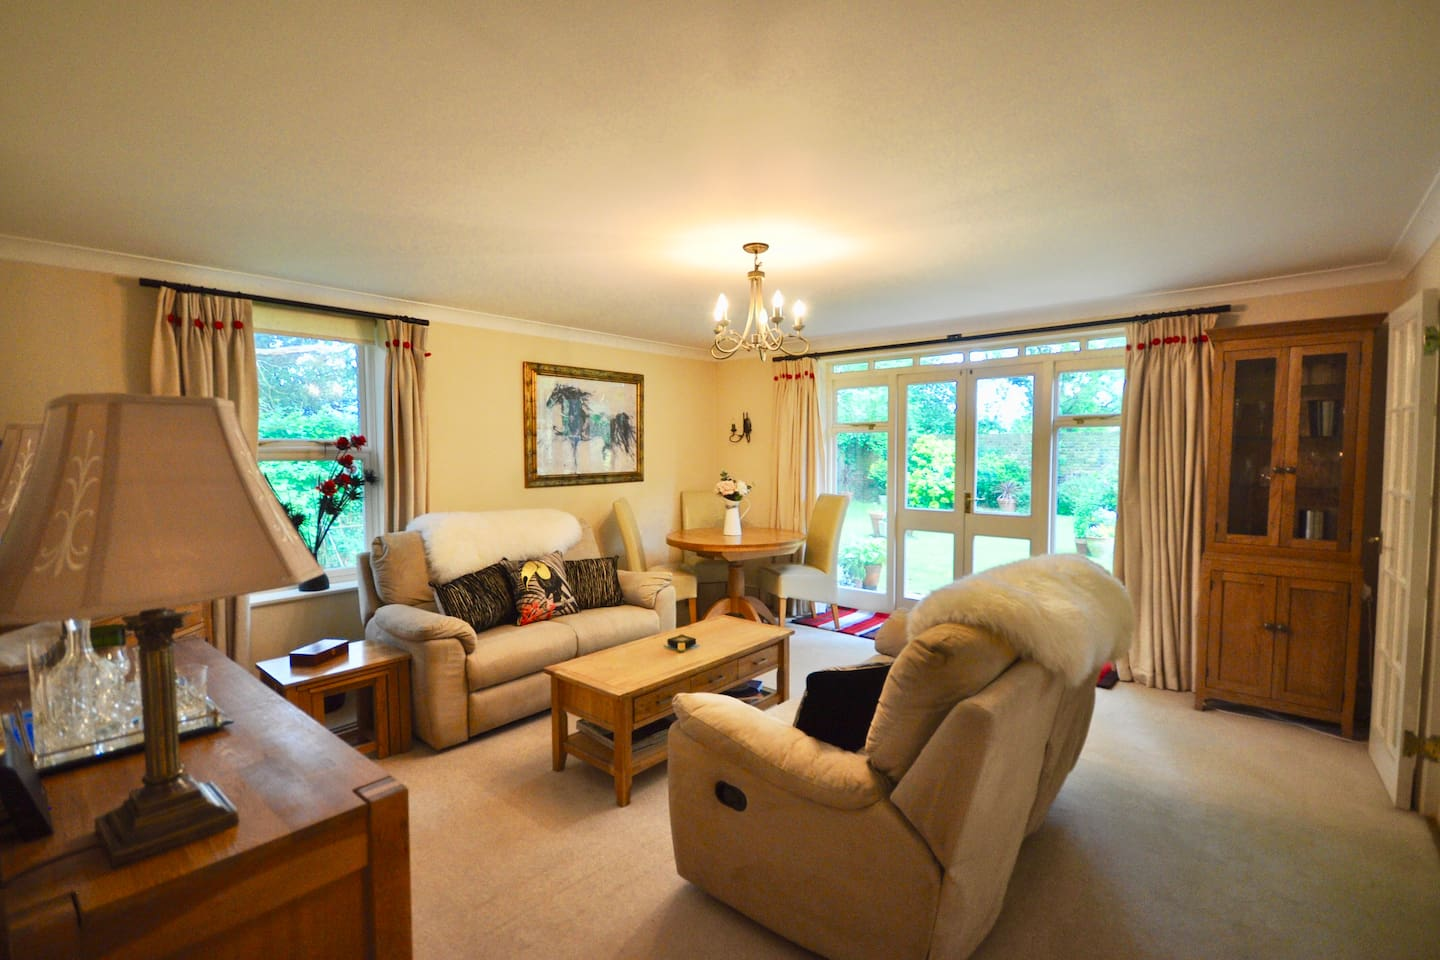 Garden Apartment Near Hampton Court Palace Apartments For Rent In Hill England United Kingdom